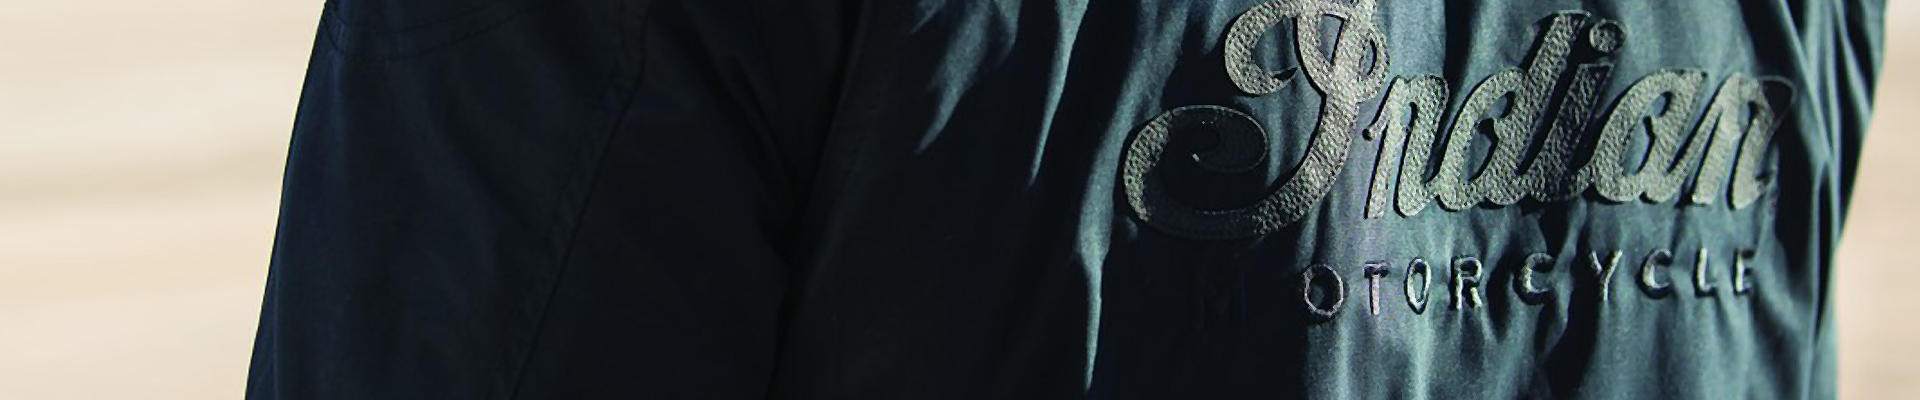 Apparel header